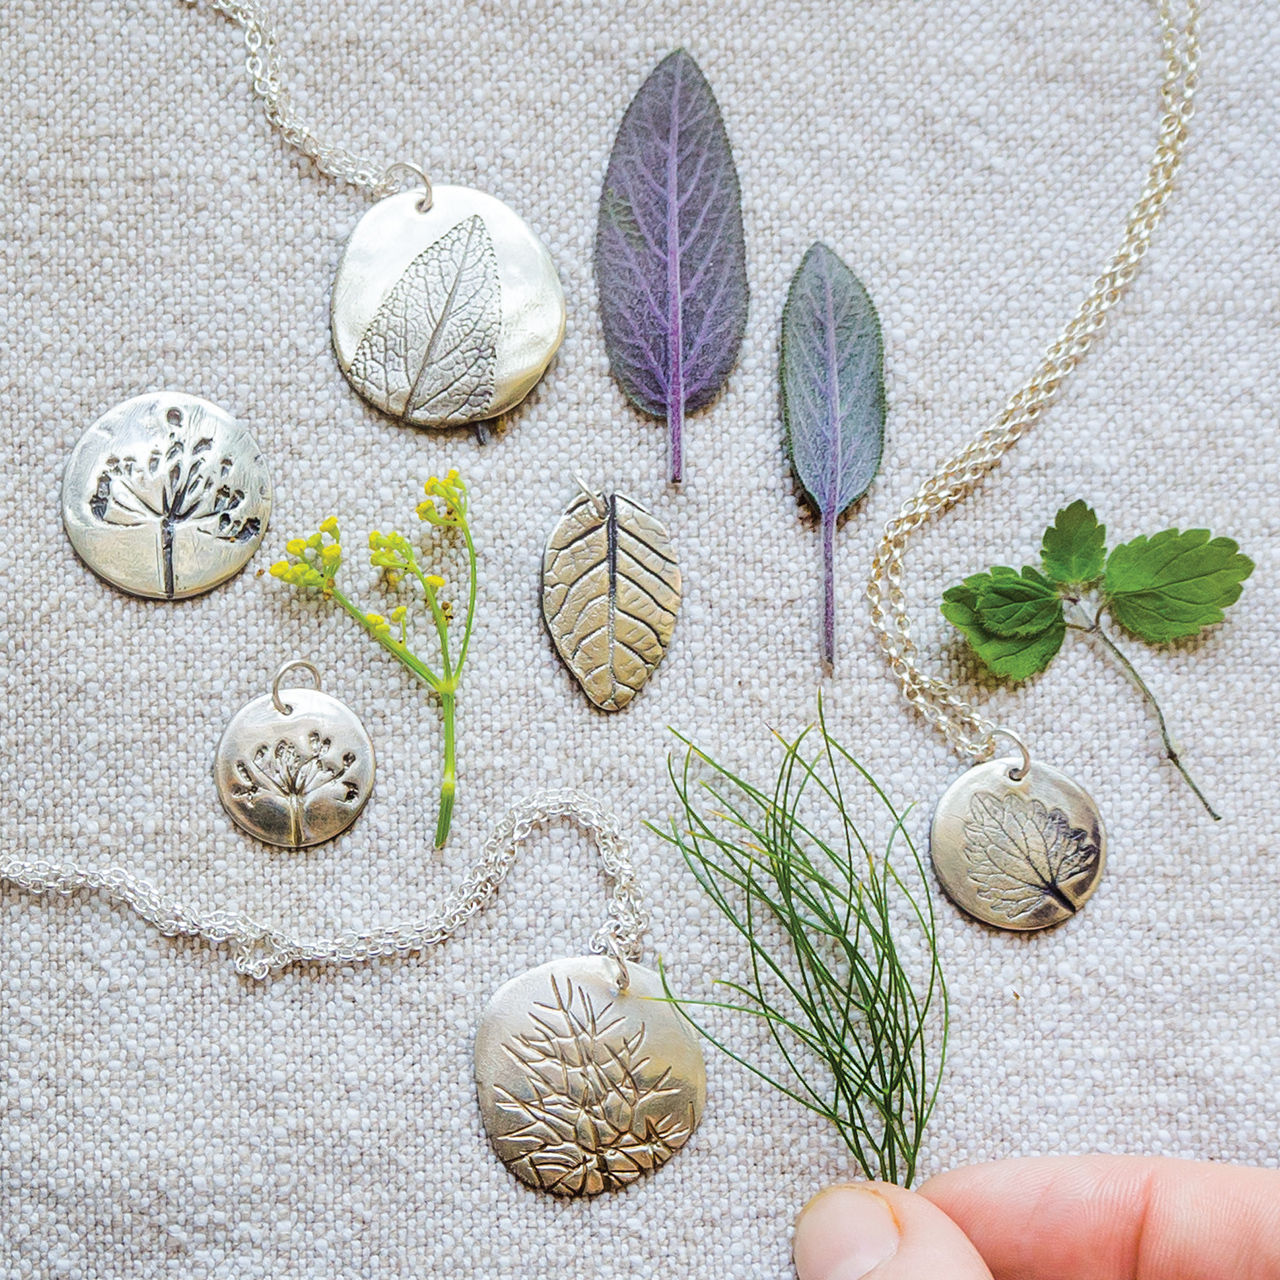 Silver Fossil Pendants from 'Making Winter' by Emma Mitchell.